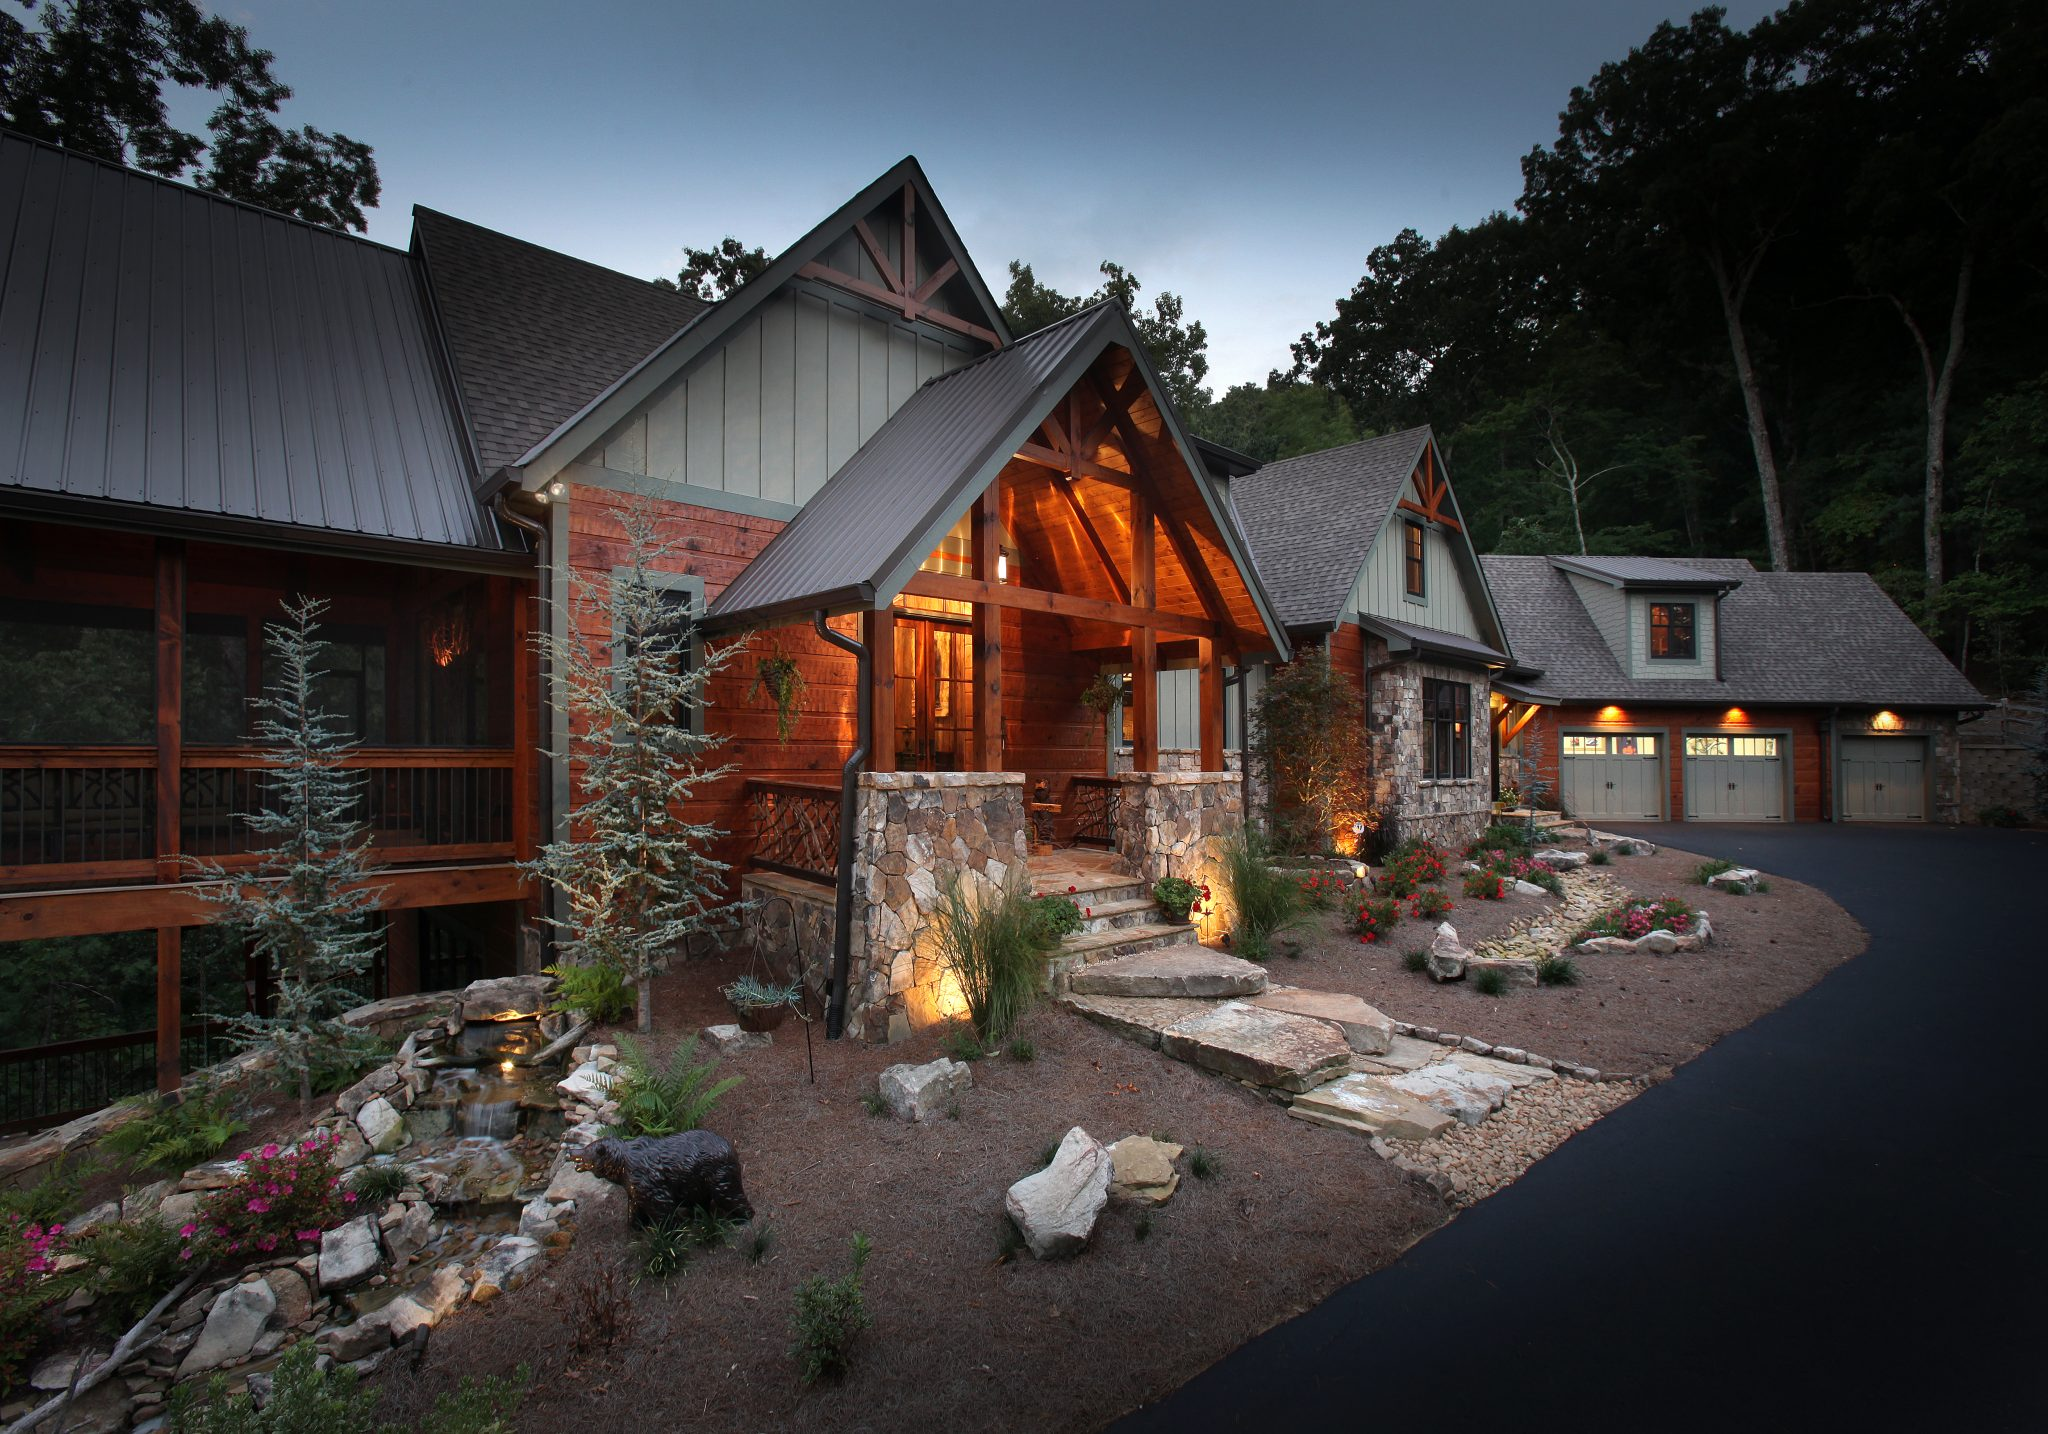 Big canoe lodge modern rustic homes for Big canoe lodge